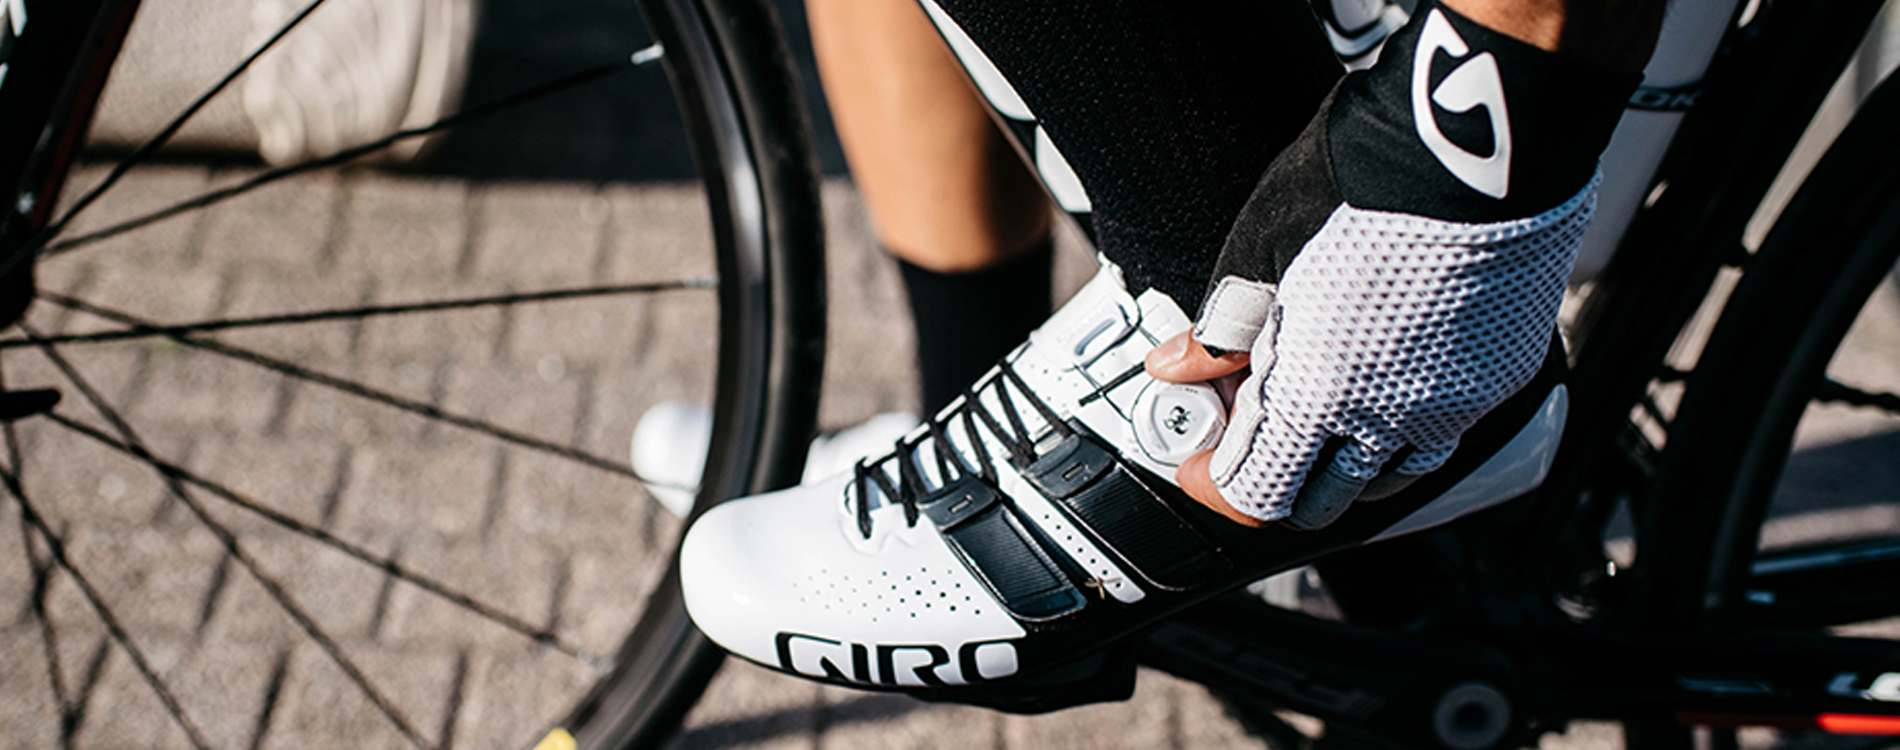 Giro Factor Techlace available now!